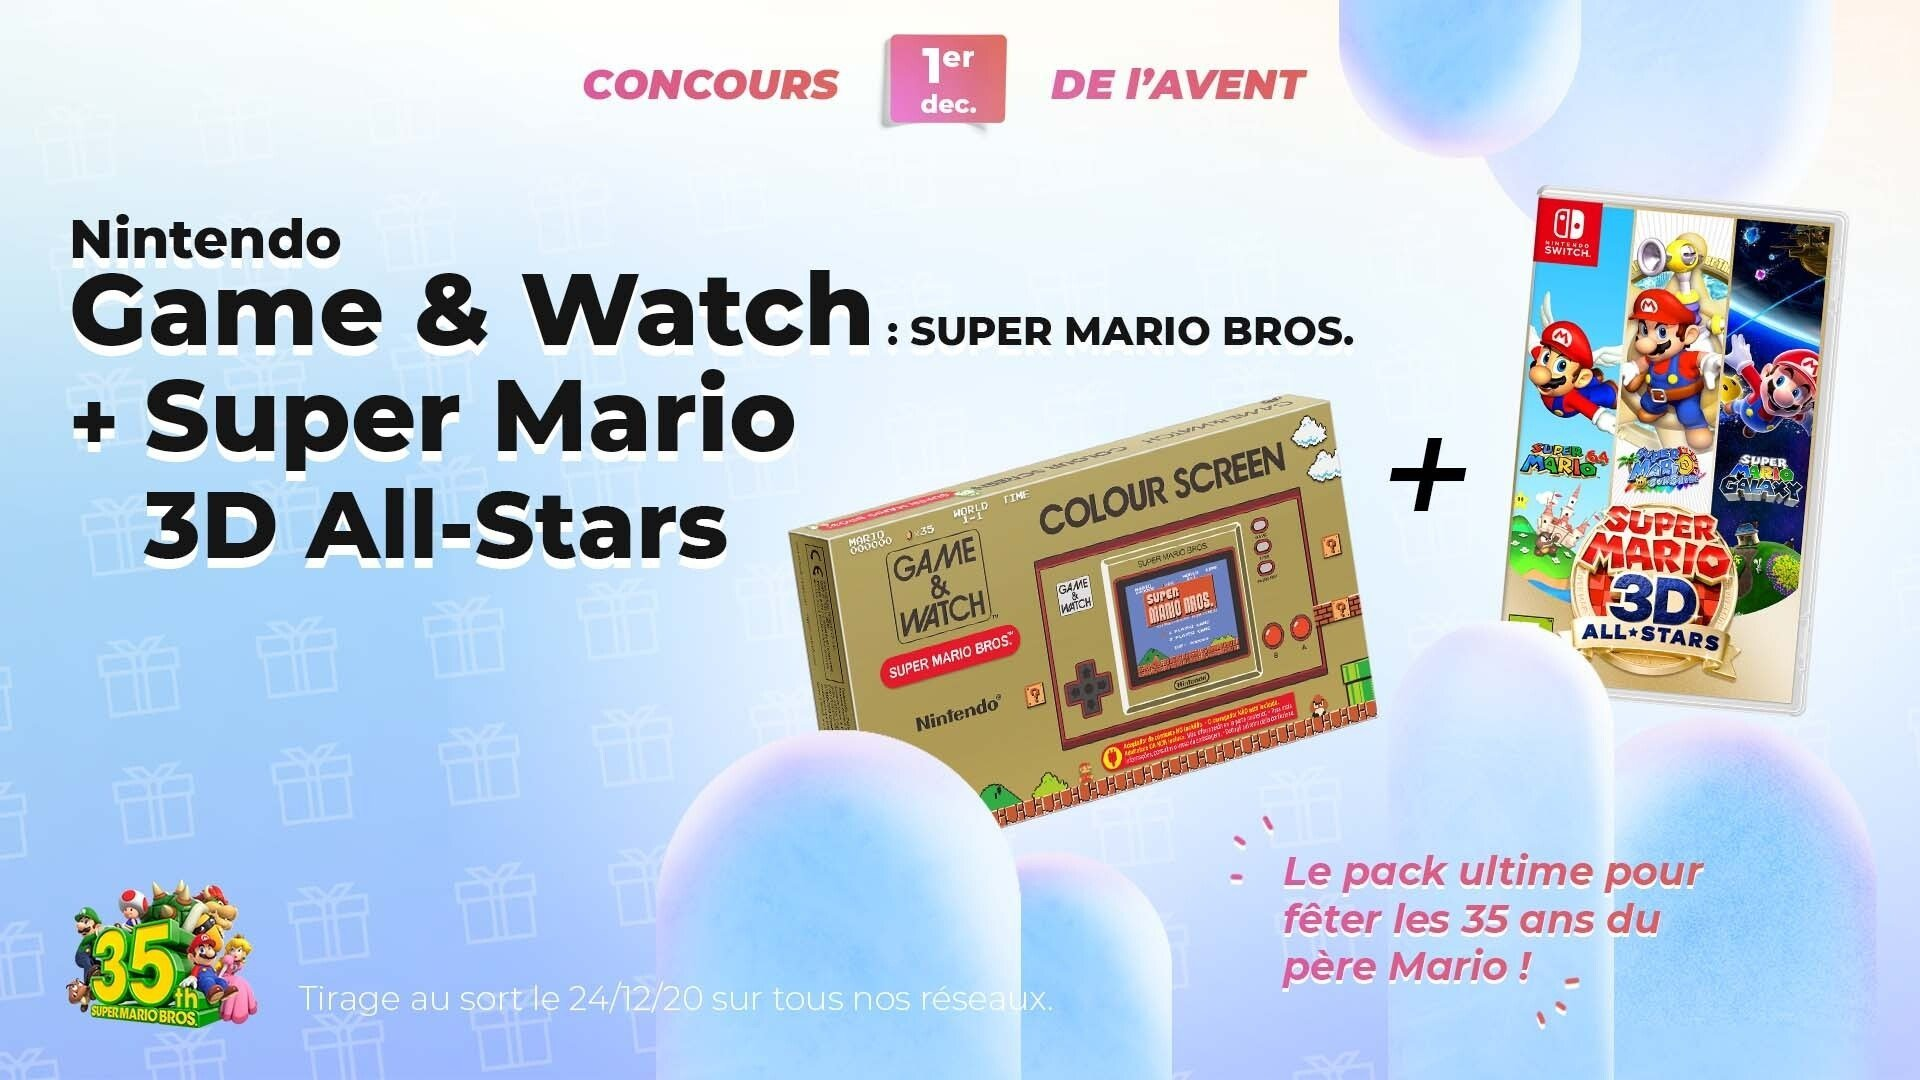 #FrandroidOffreMoi un joli lot Super Mario (Game & Watch + jeux Switch)